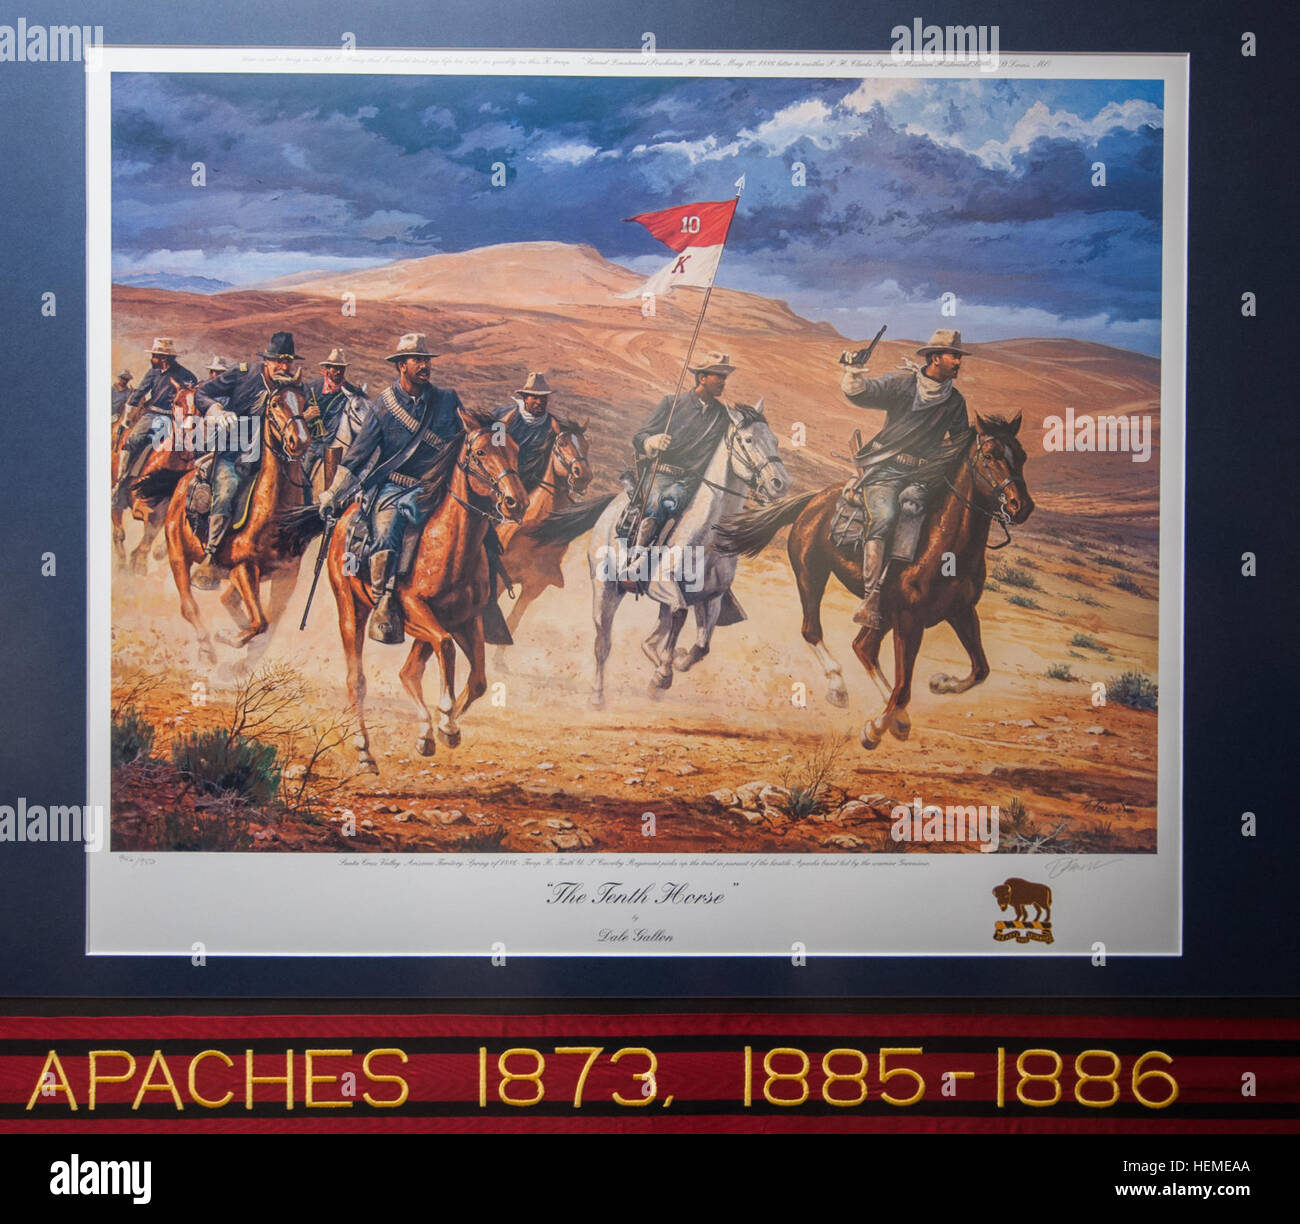 Buffalo Soldier prints, by famed historical artist Dale Gallon, hang in the U.S. Army Reserve Command Headquarters Stock Photo